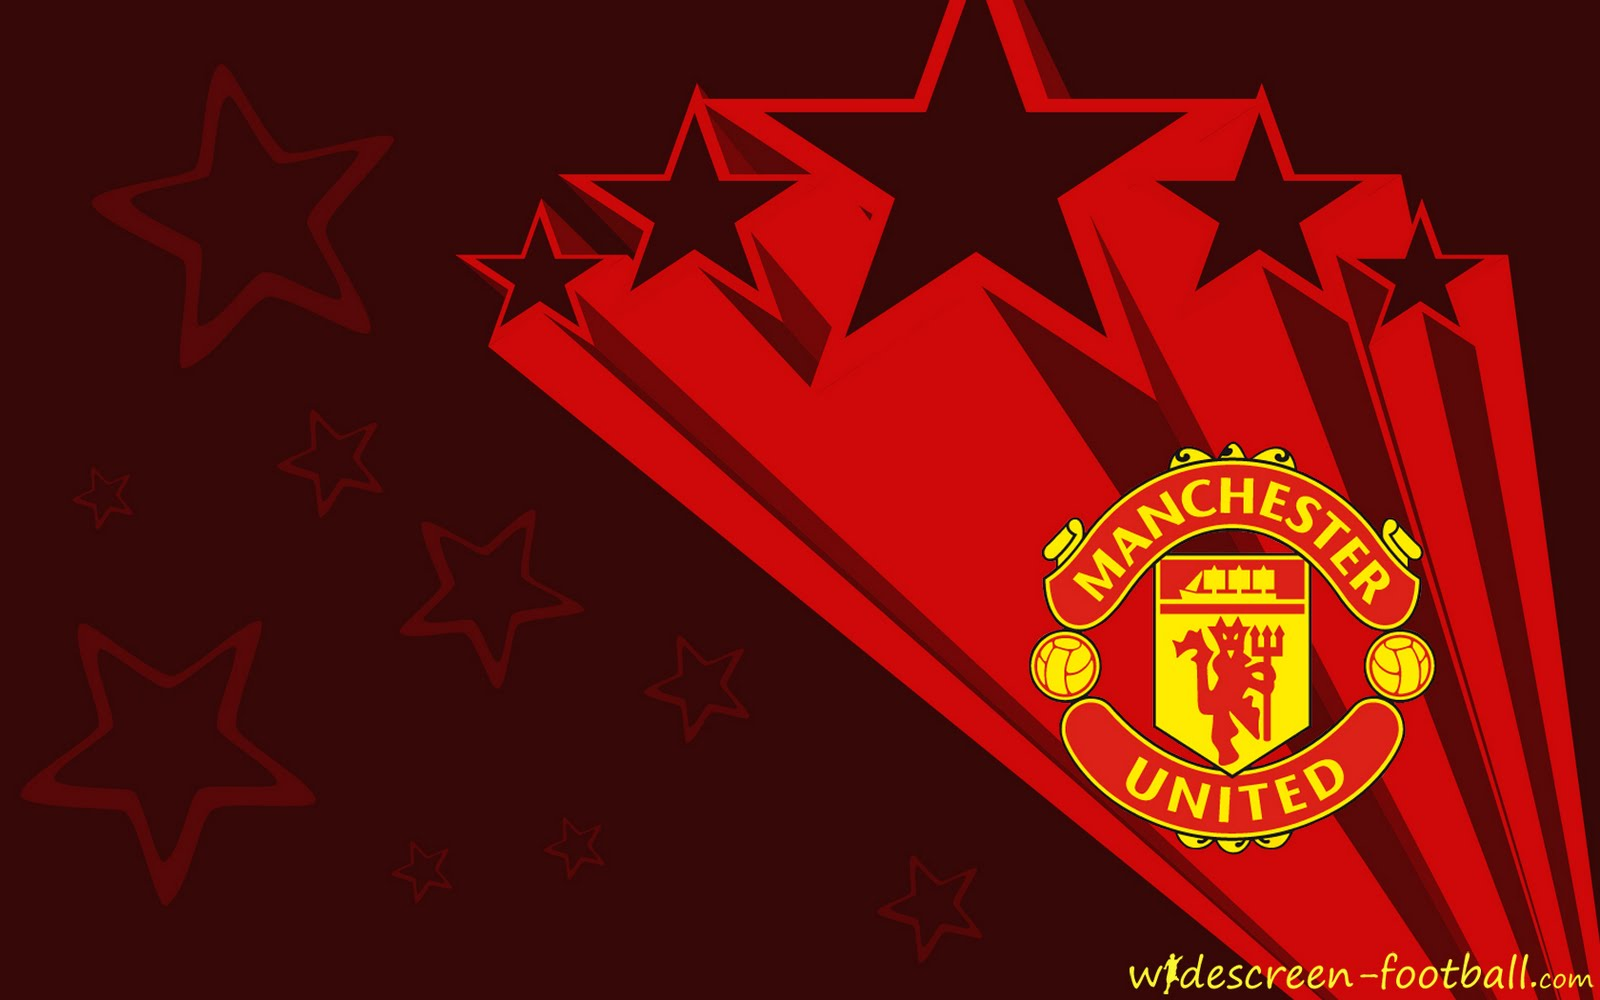 Manchester United Wallpapers HD| HD Wallpapers ,Backgrounds ,Photos ,Pictures, Image ,PC